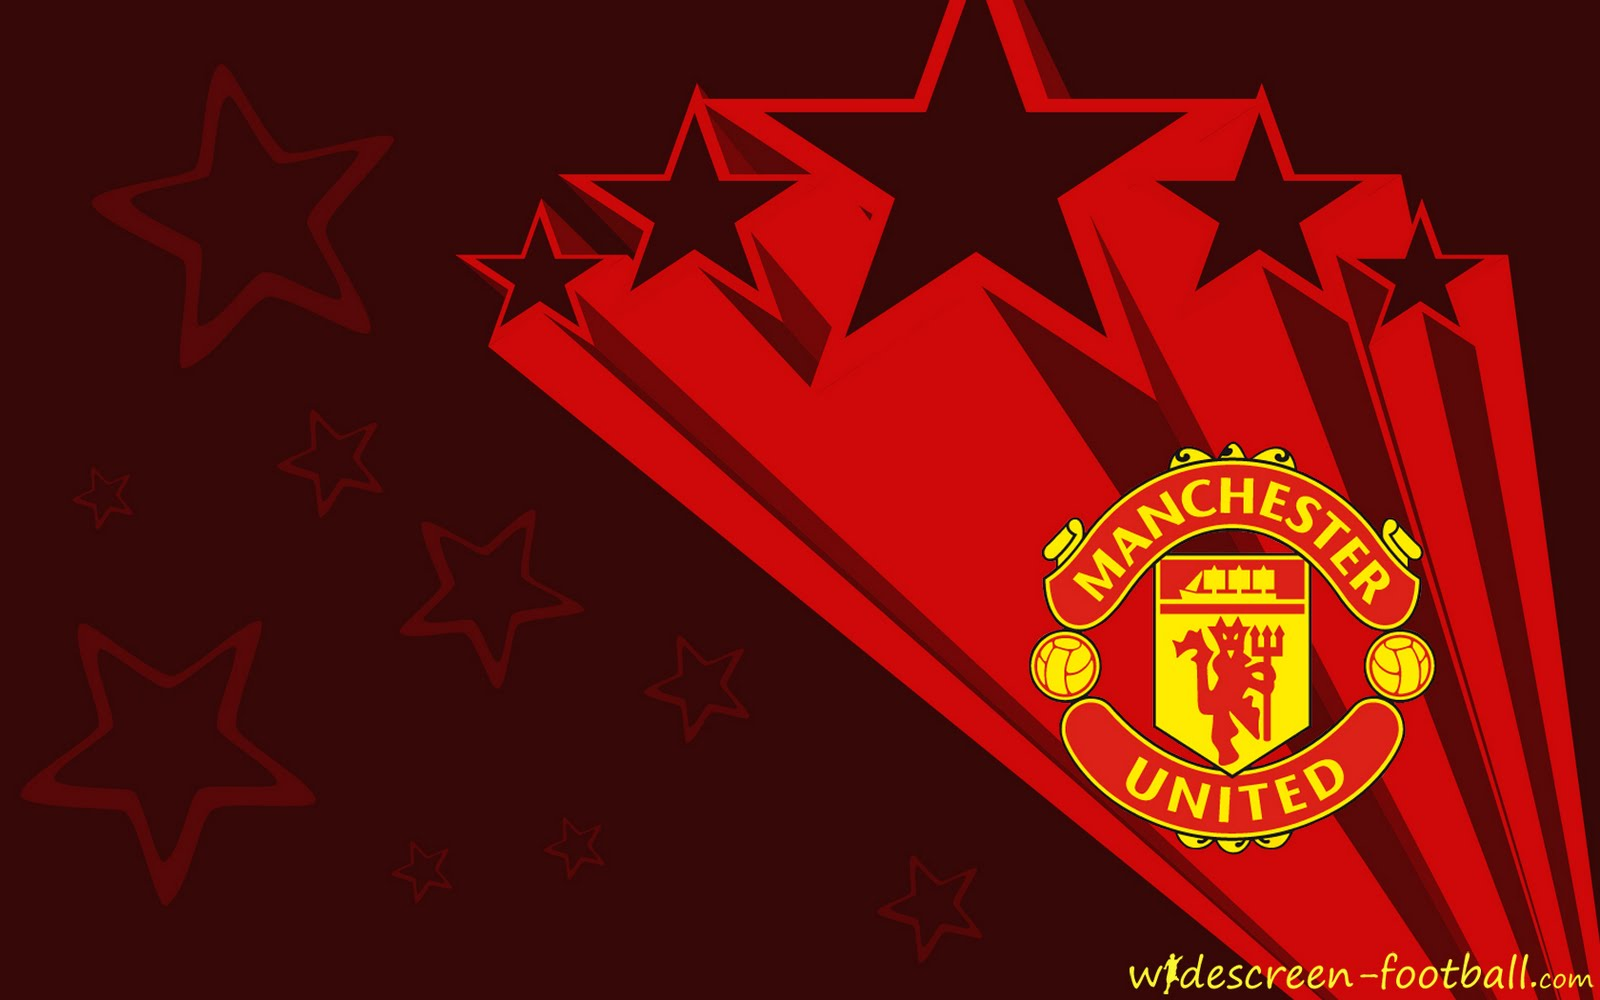 Manchester United Wallpapers HD| HD Wallpapers ,Backgrounds ,Photos ,Pictures, Image ,PC